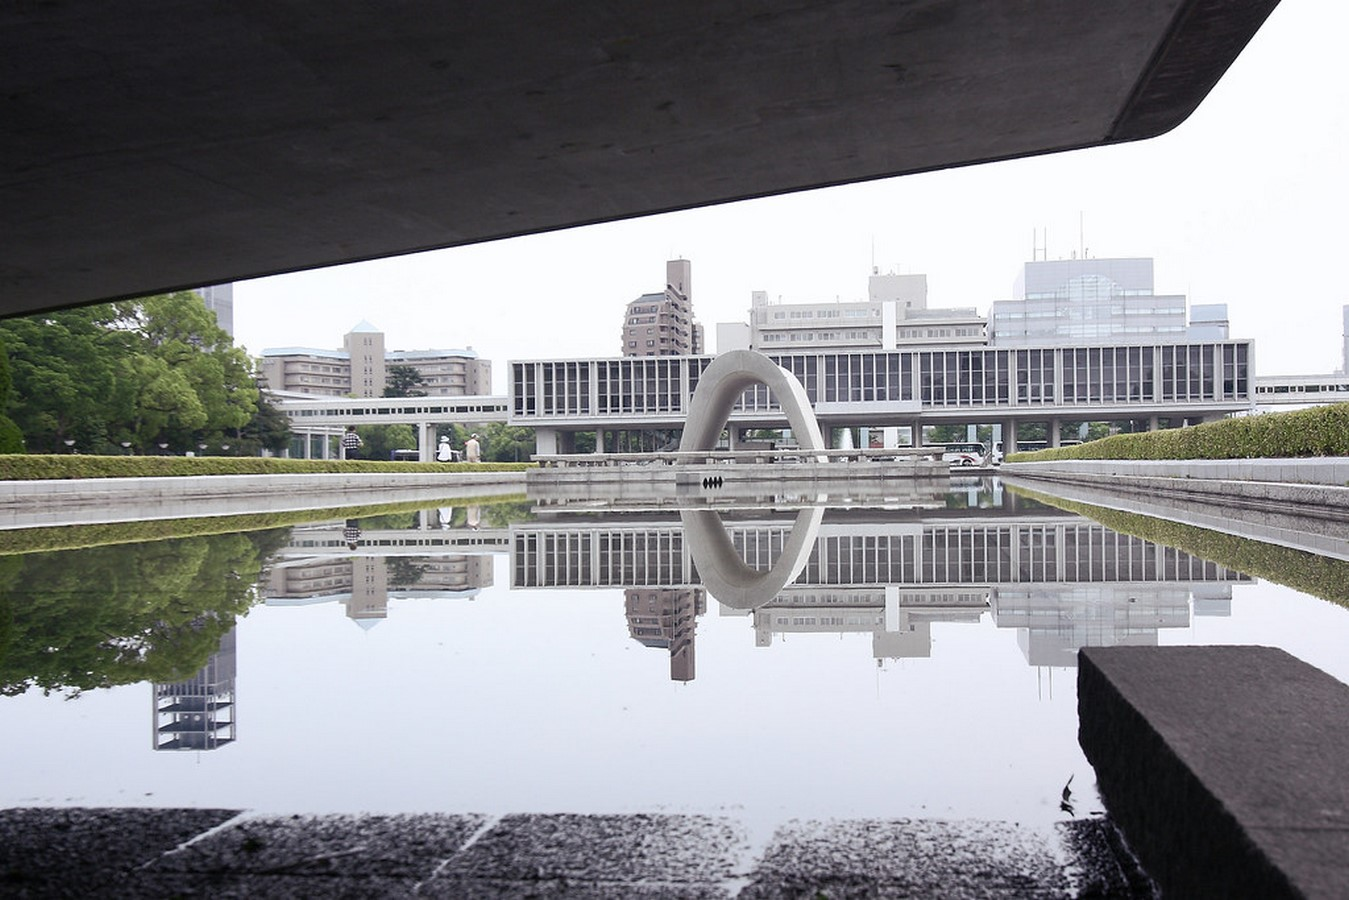 Hiroshima peace Center and memorial park by Kenzo Tange: Symbolizing devotion to peace - Sheet6